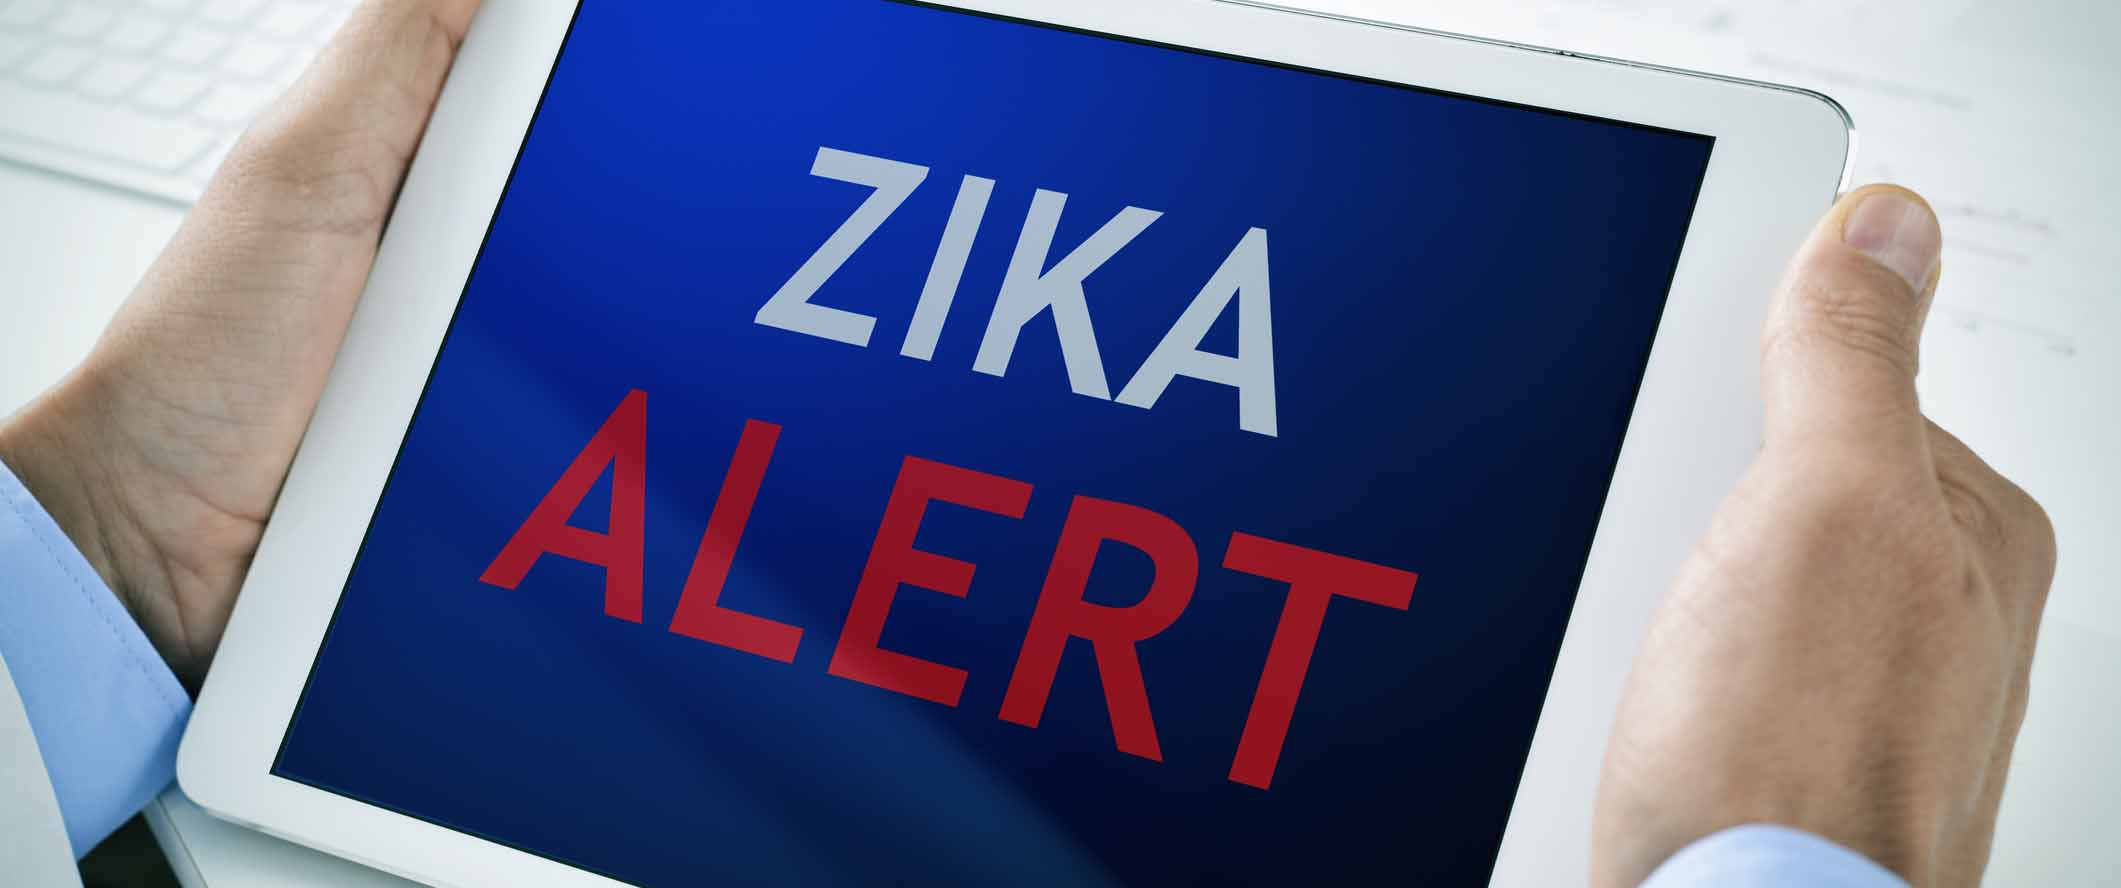 What Men Should Know About Zika